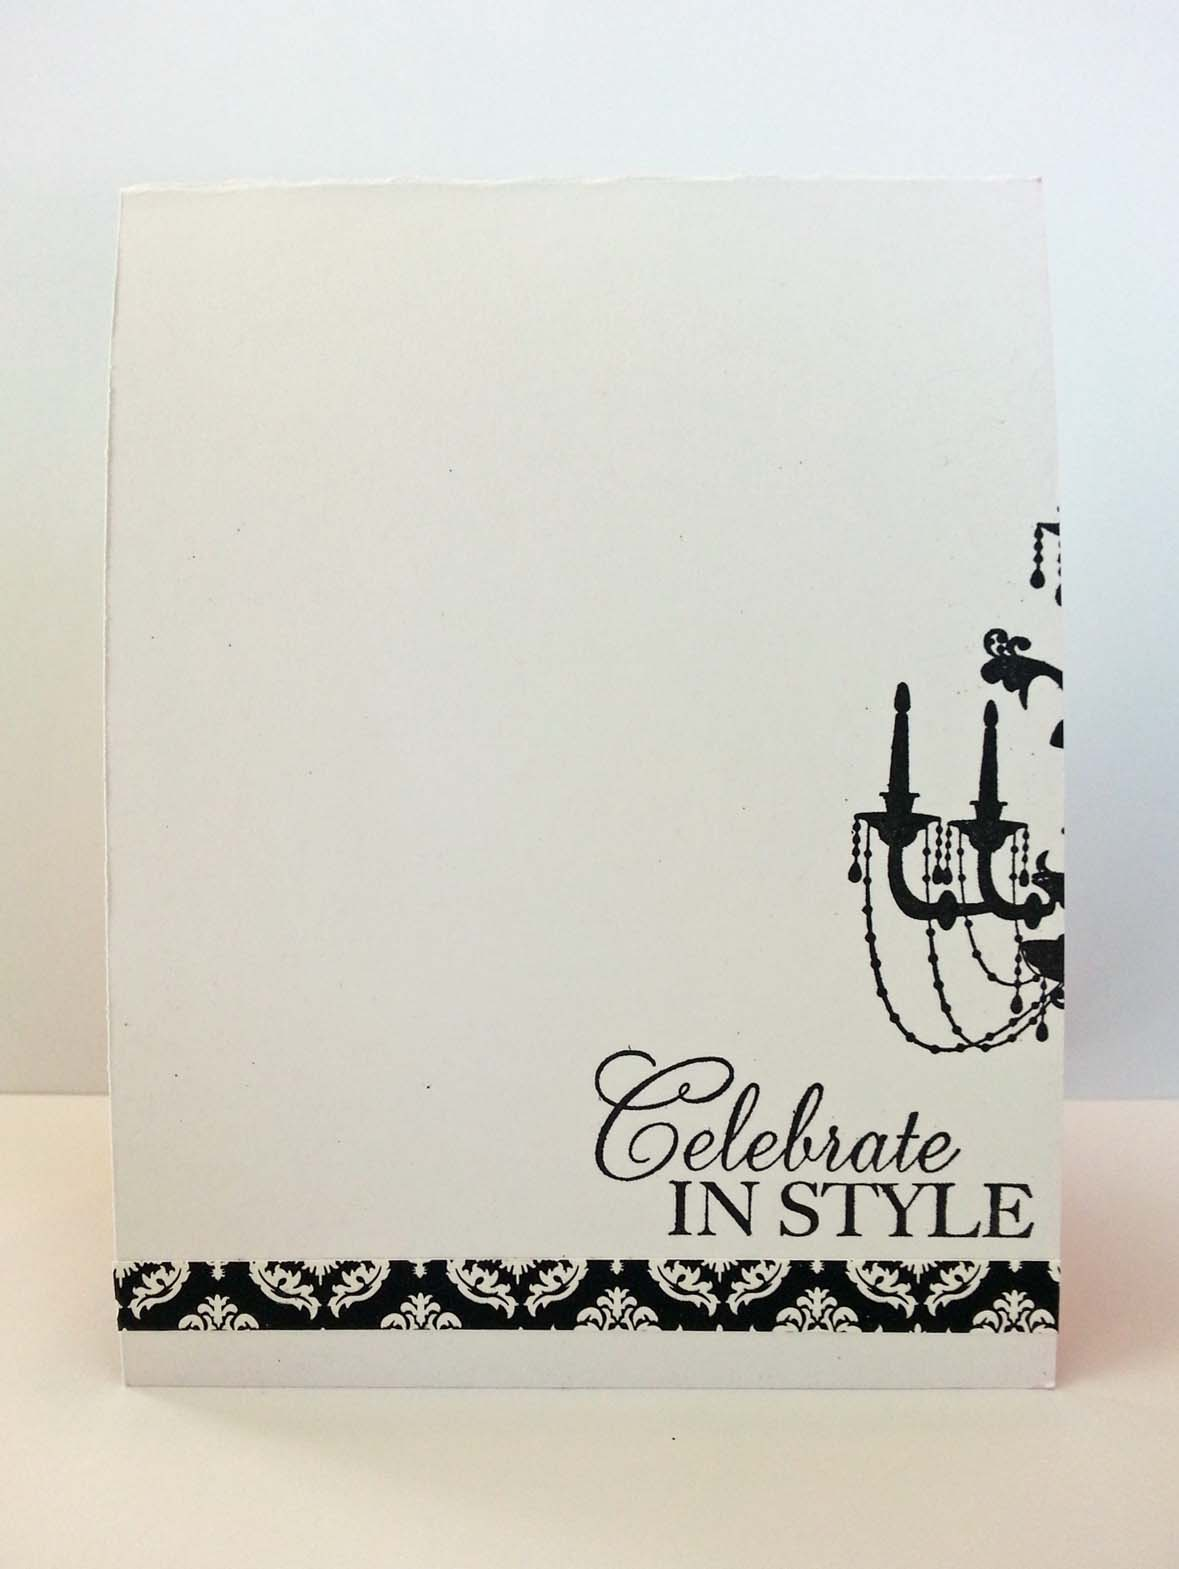 Kitchen Table Stamper Blog Archive Girly Birthday Card Inside